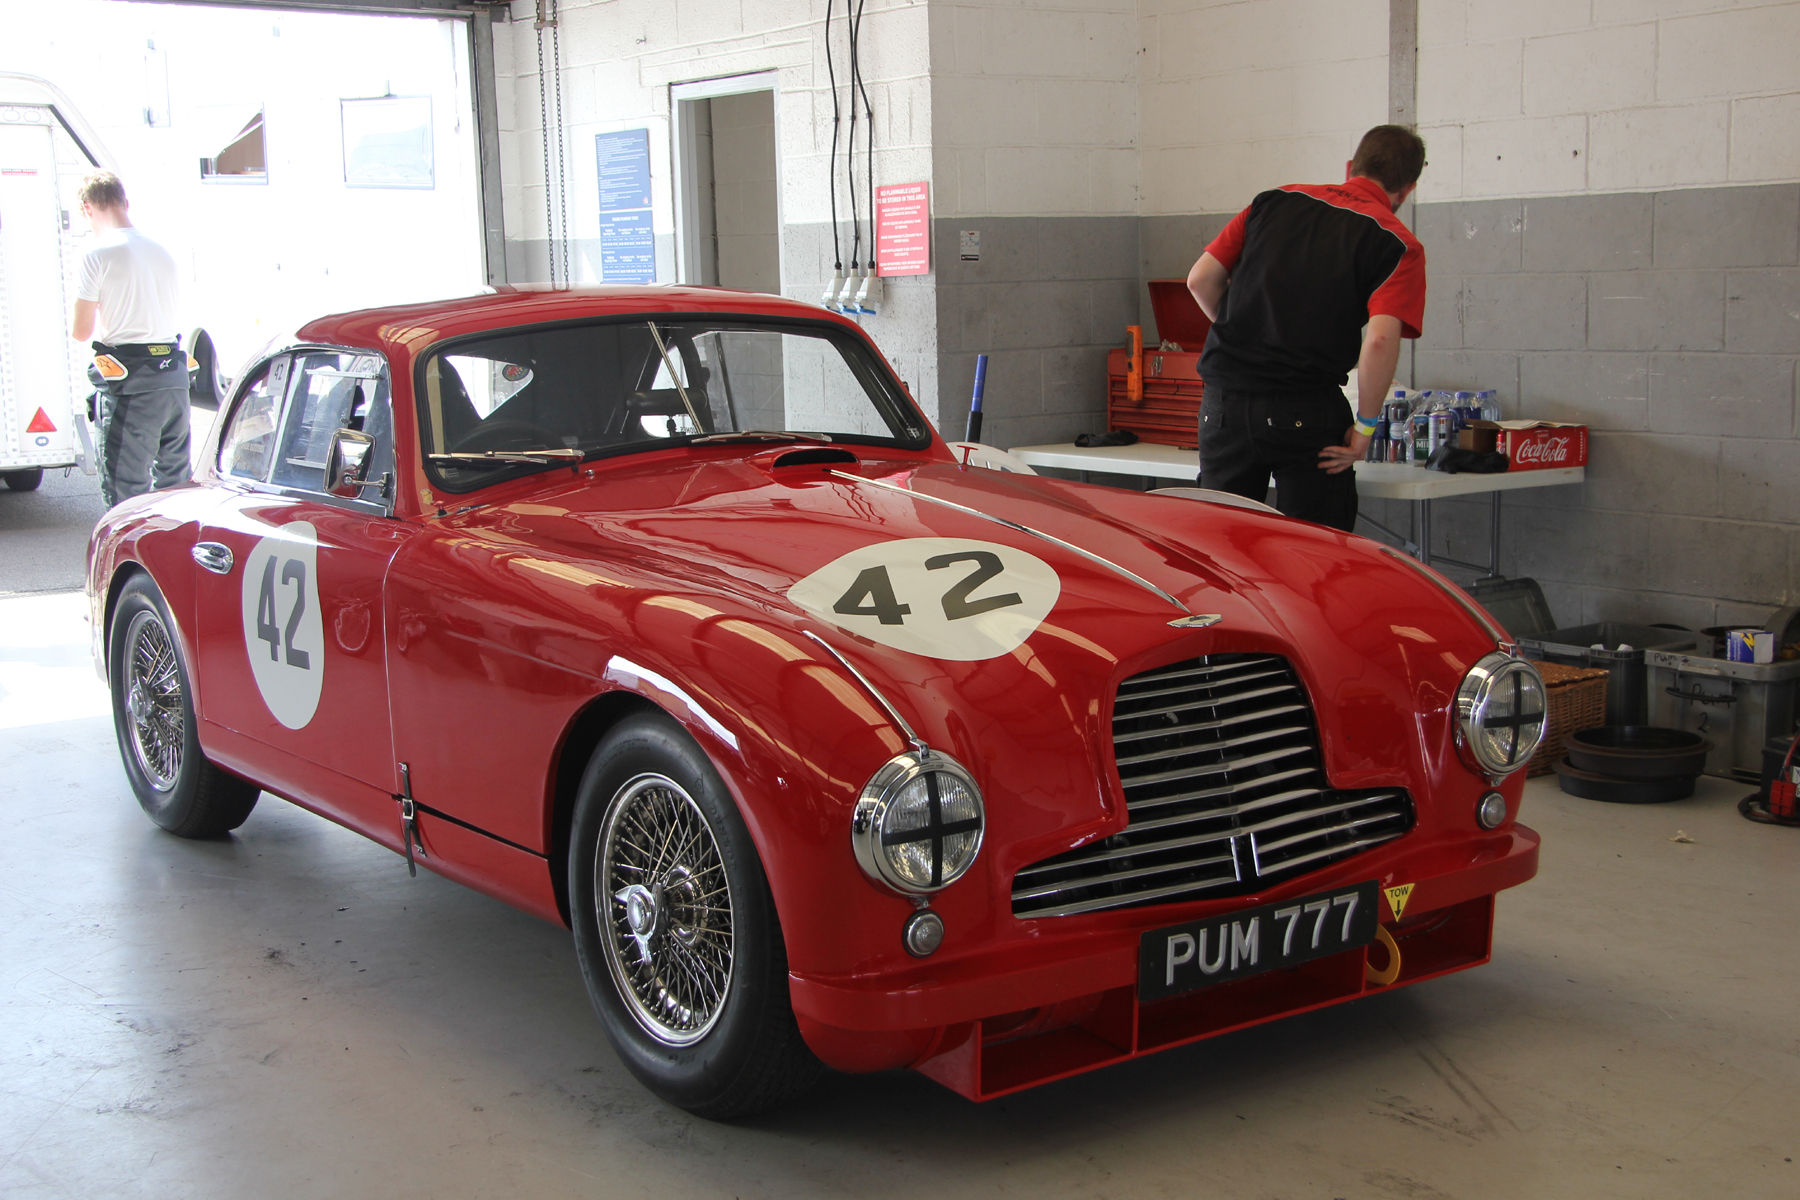 Paul Chase-Gardener's iconic Aston Martin DB2 at rest in the pitlane garage prior to the race start.                                   Photo - Pat Arculus, Tripos Media